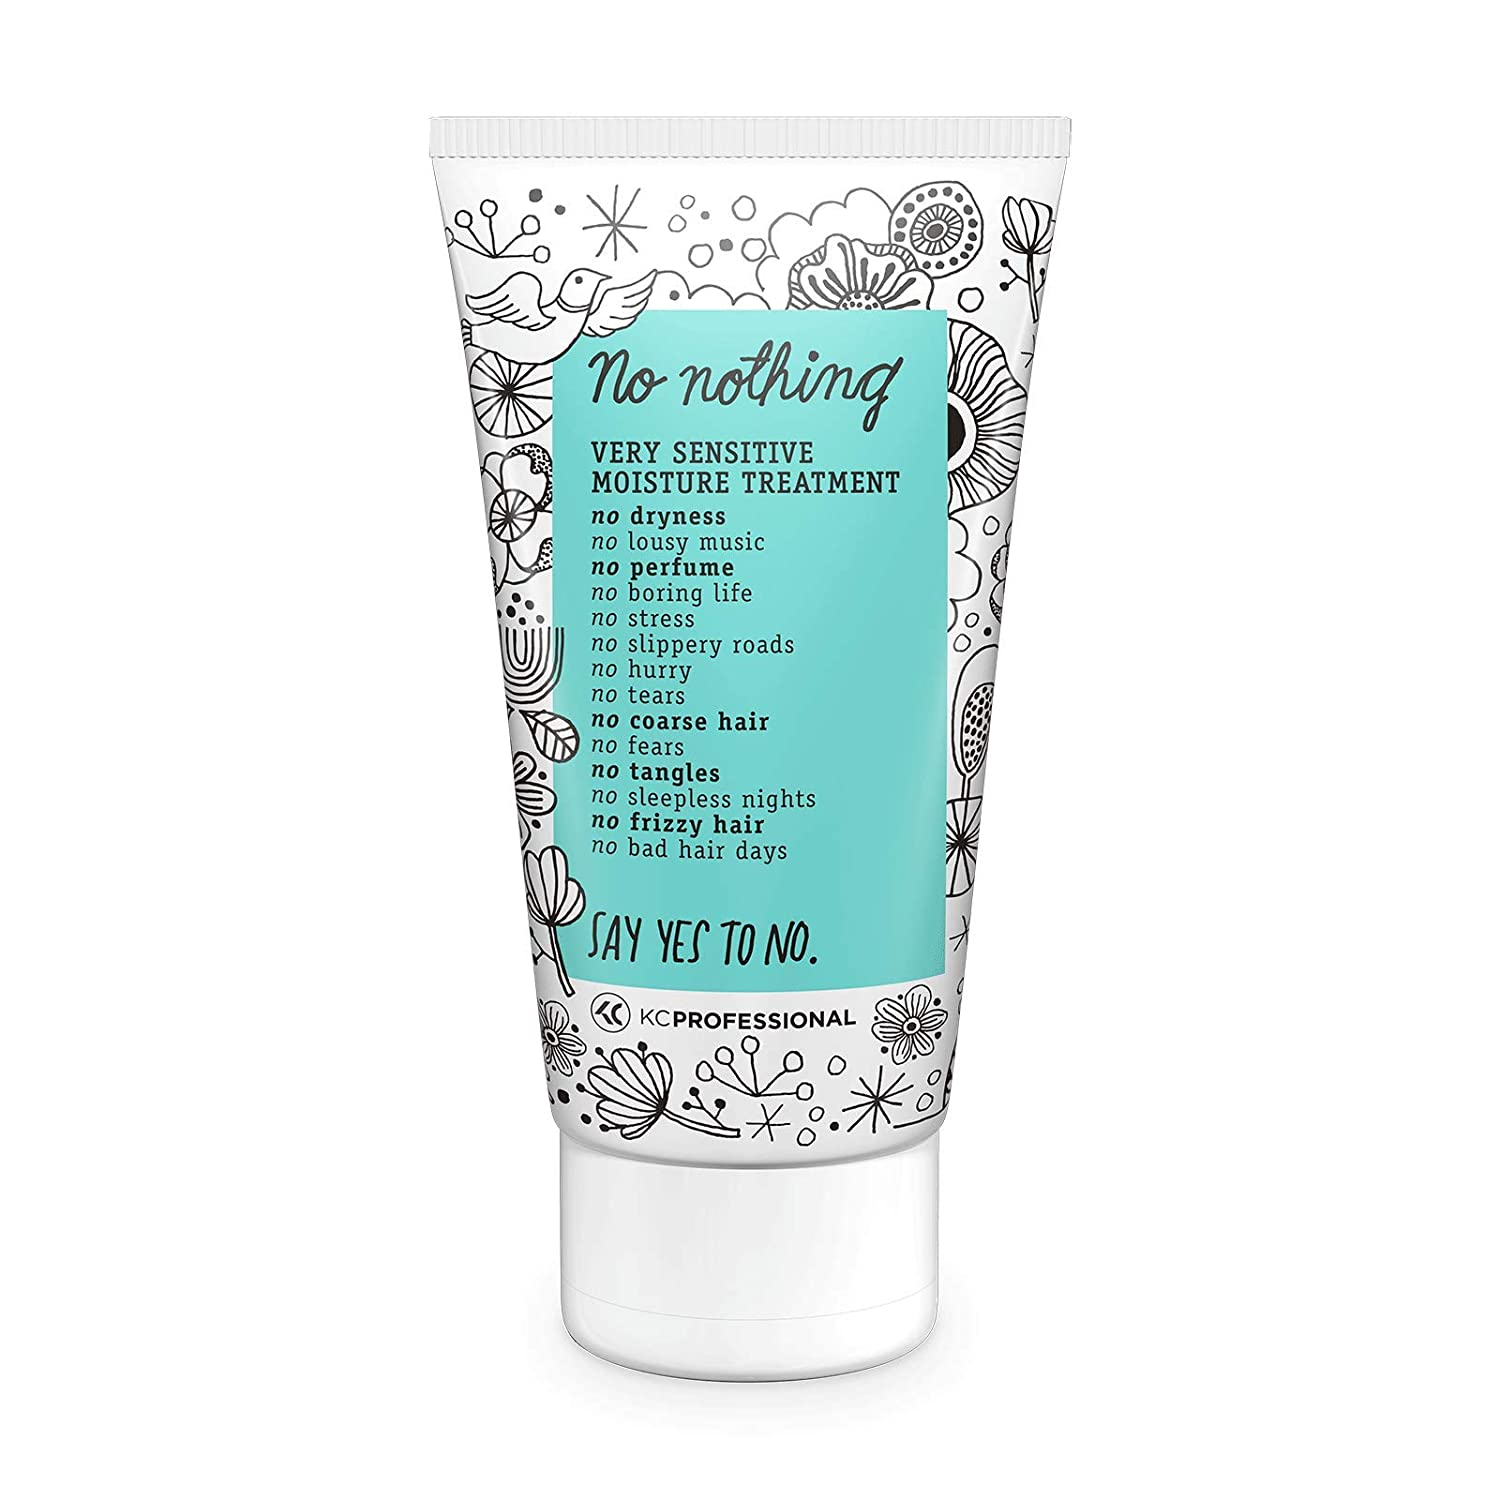 No Nothing Very Sensitive Moisture Treatment - Moisturizing Product for Dry Hair